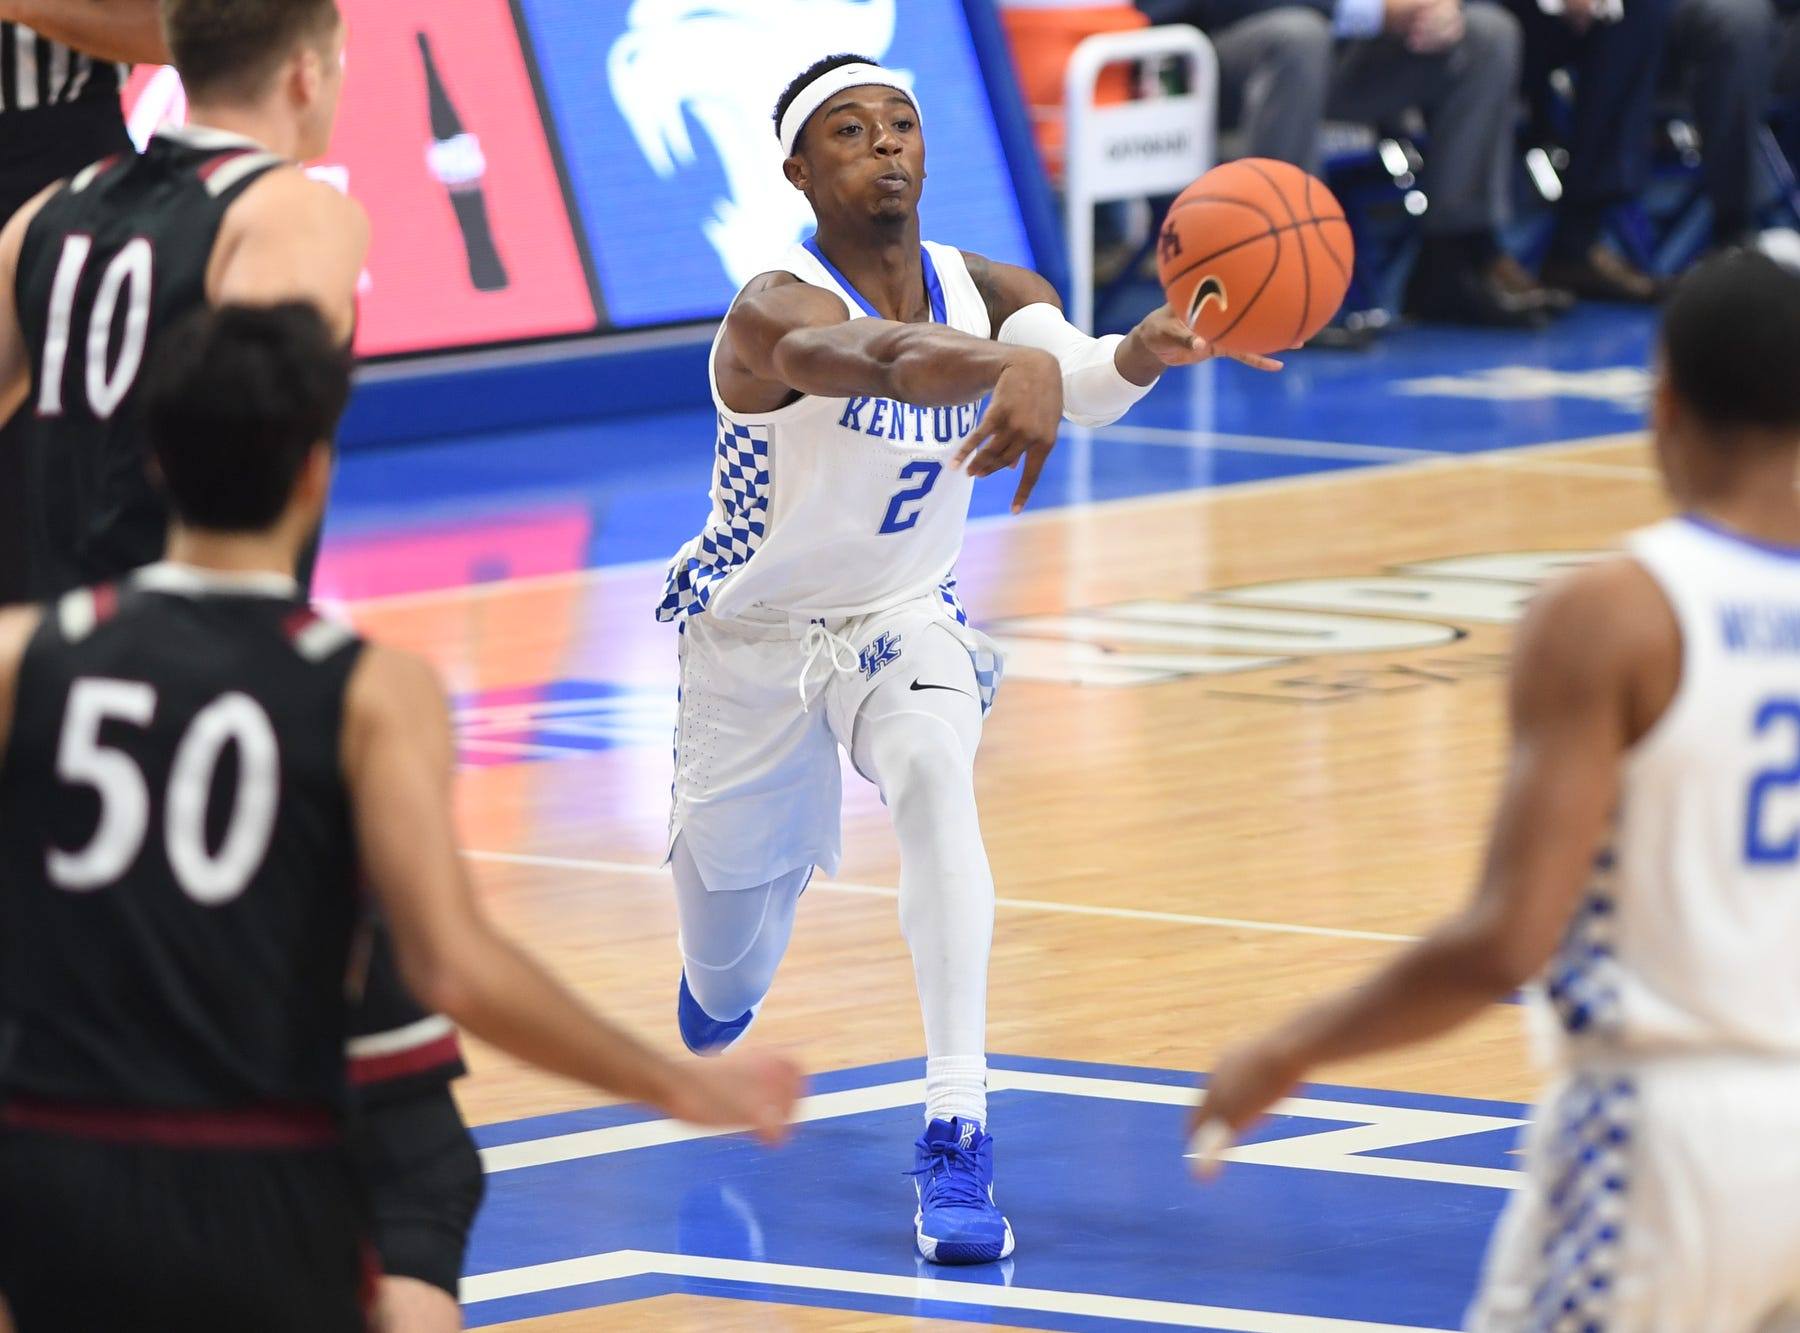 Ashton Hagans passes the ball during the University of Kentucky basketball game against Indiana University of Pennsylvania at Rupp Arena on Friday, Nov. 2, 2018.